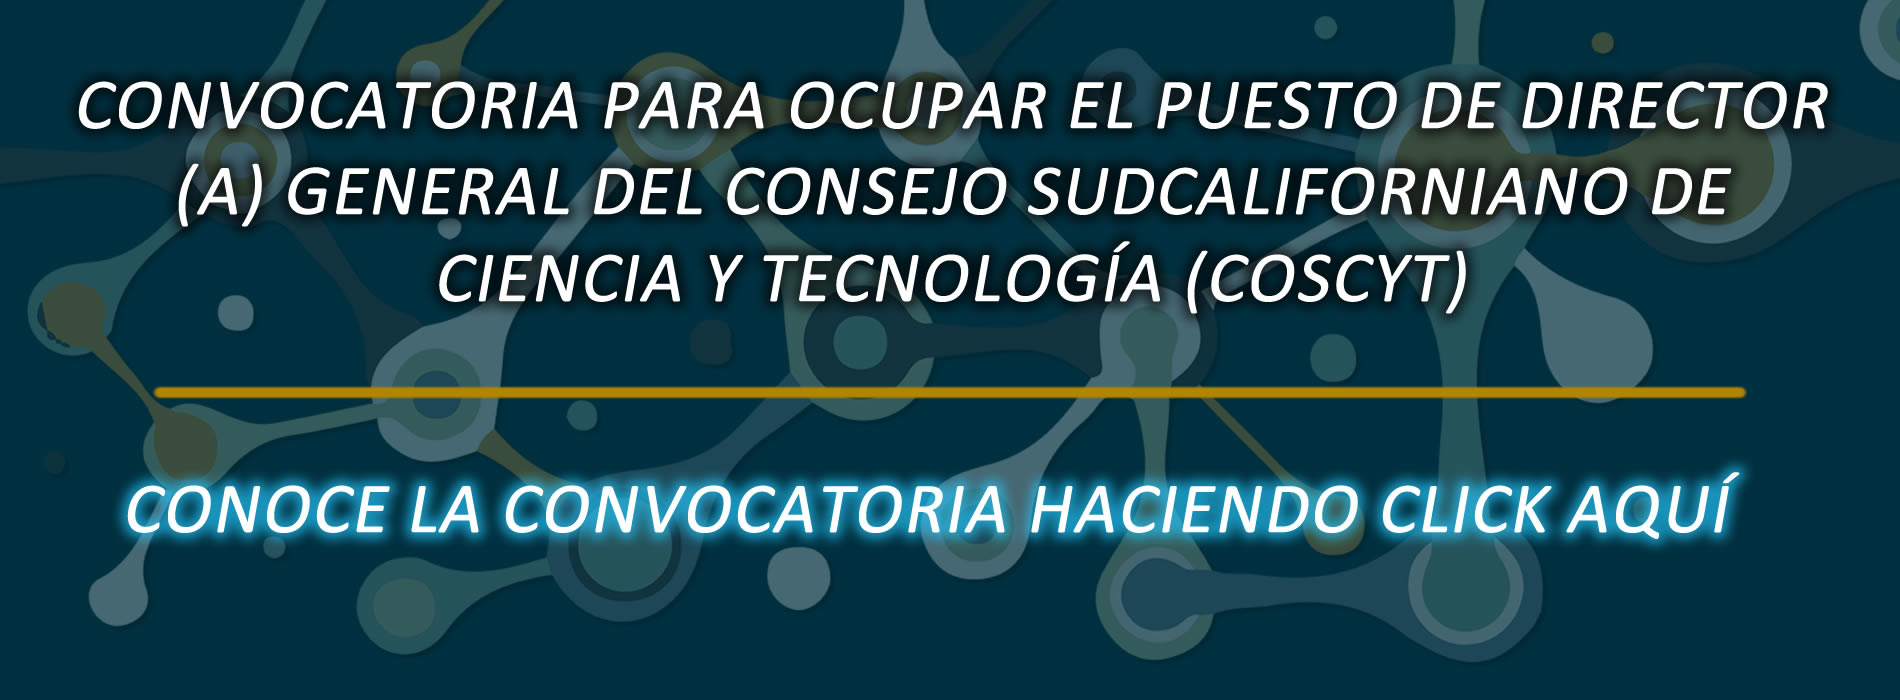 ConvocatoriaDireccionCOSCYT